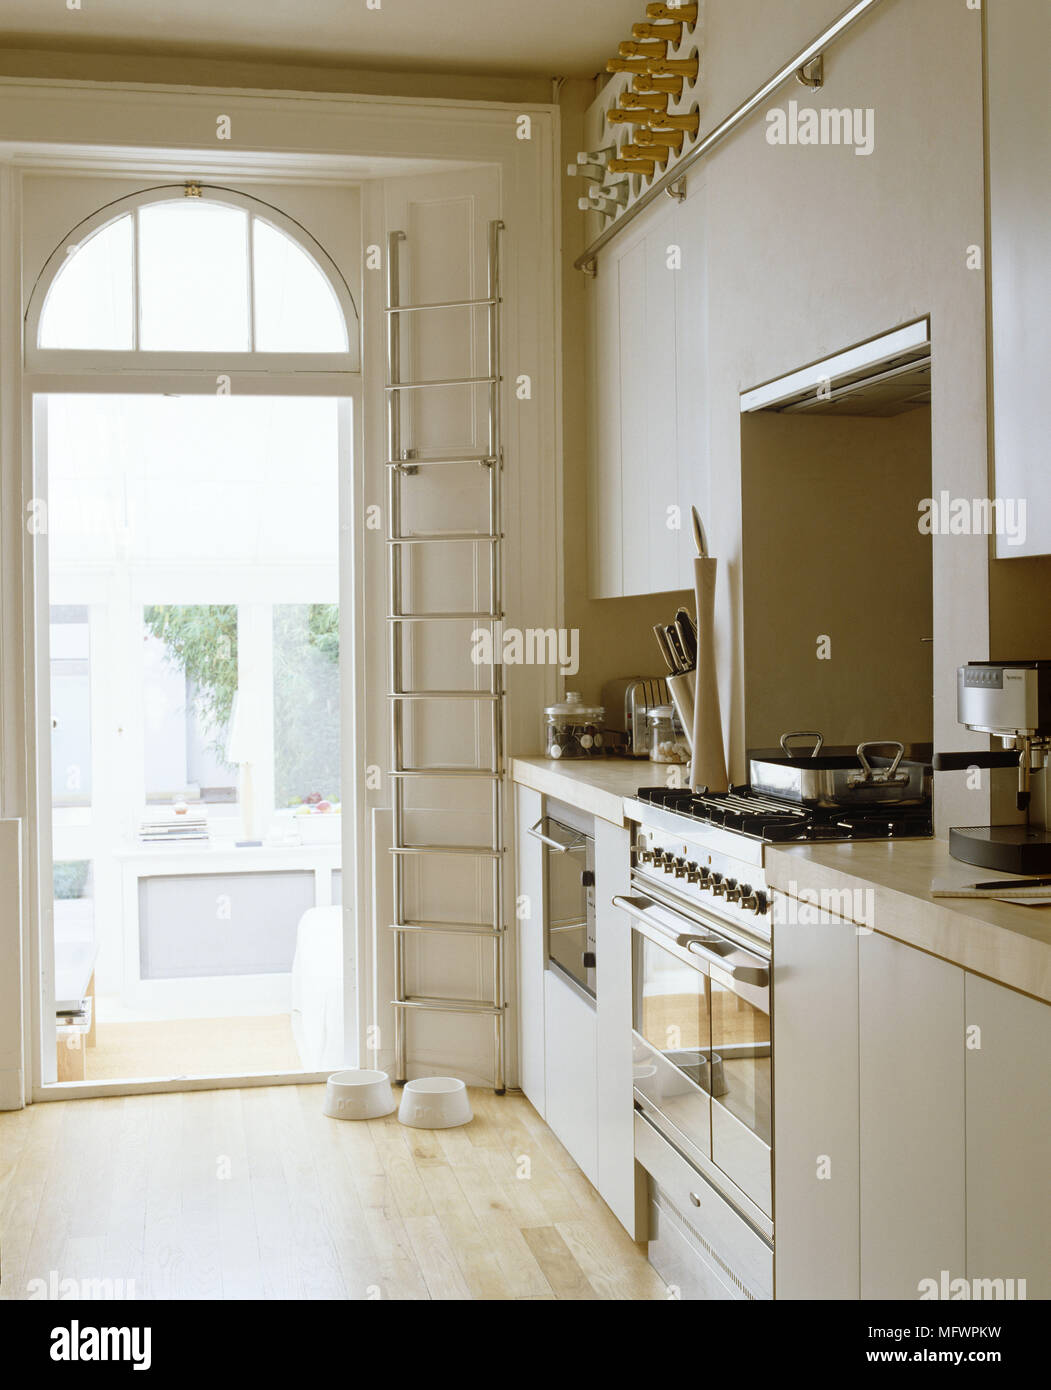 Integral oven in recess in kitchen in neutral colours - Stock Image